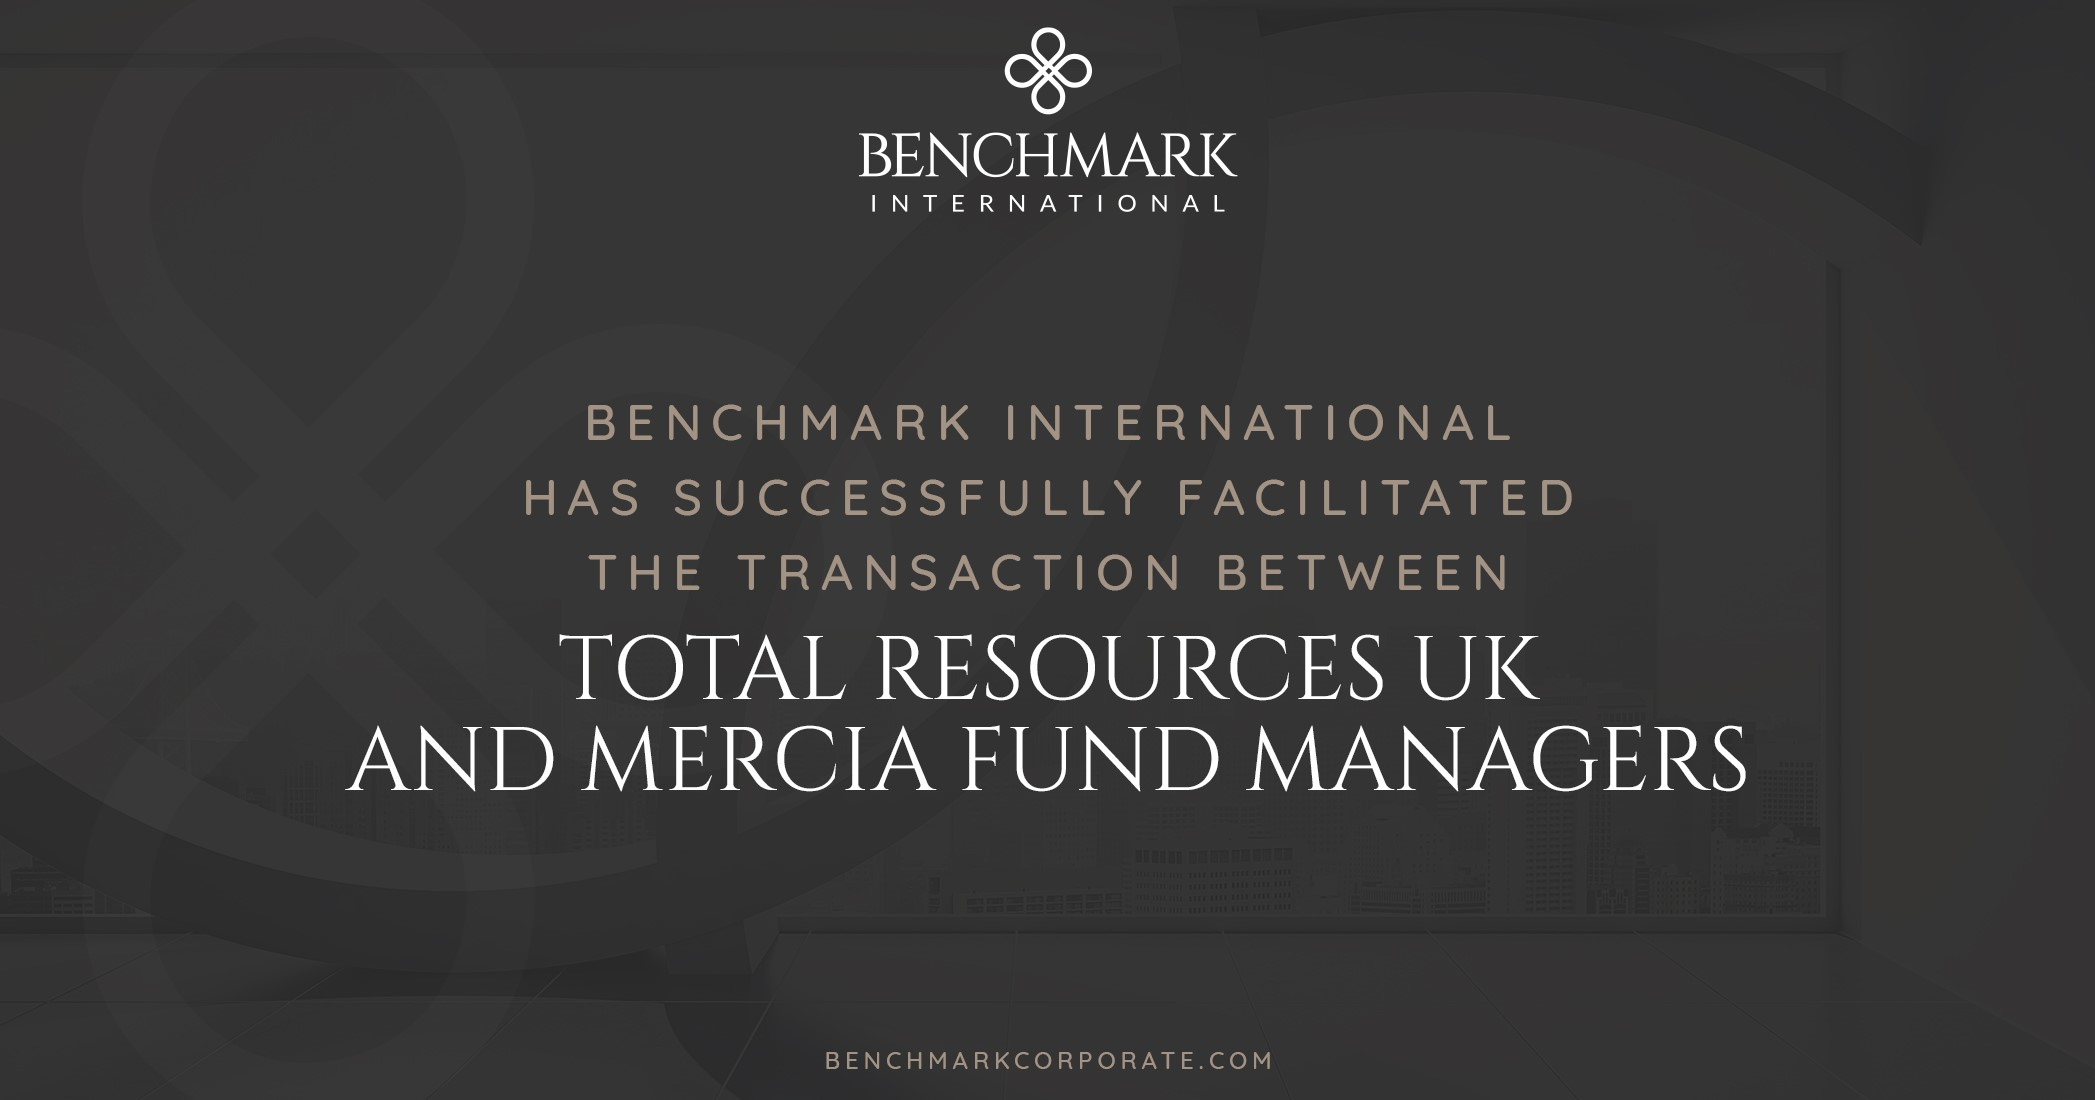 Benchmark International Advises on the Transaction Between